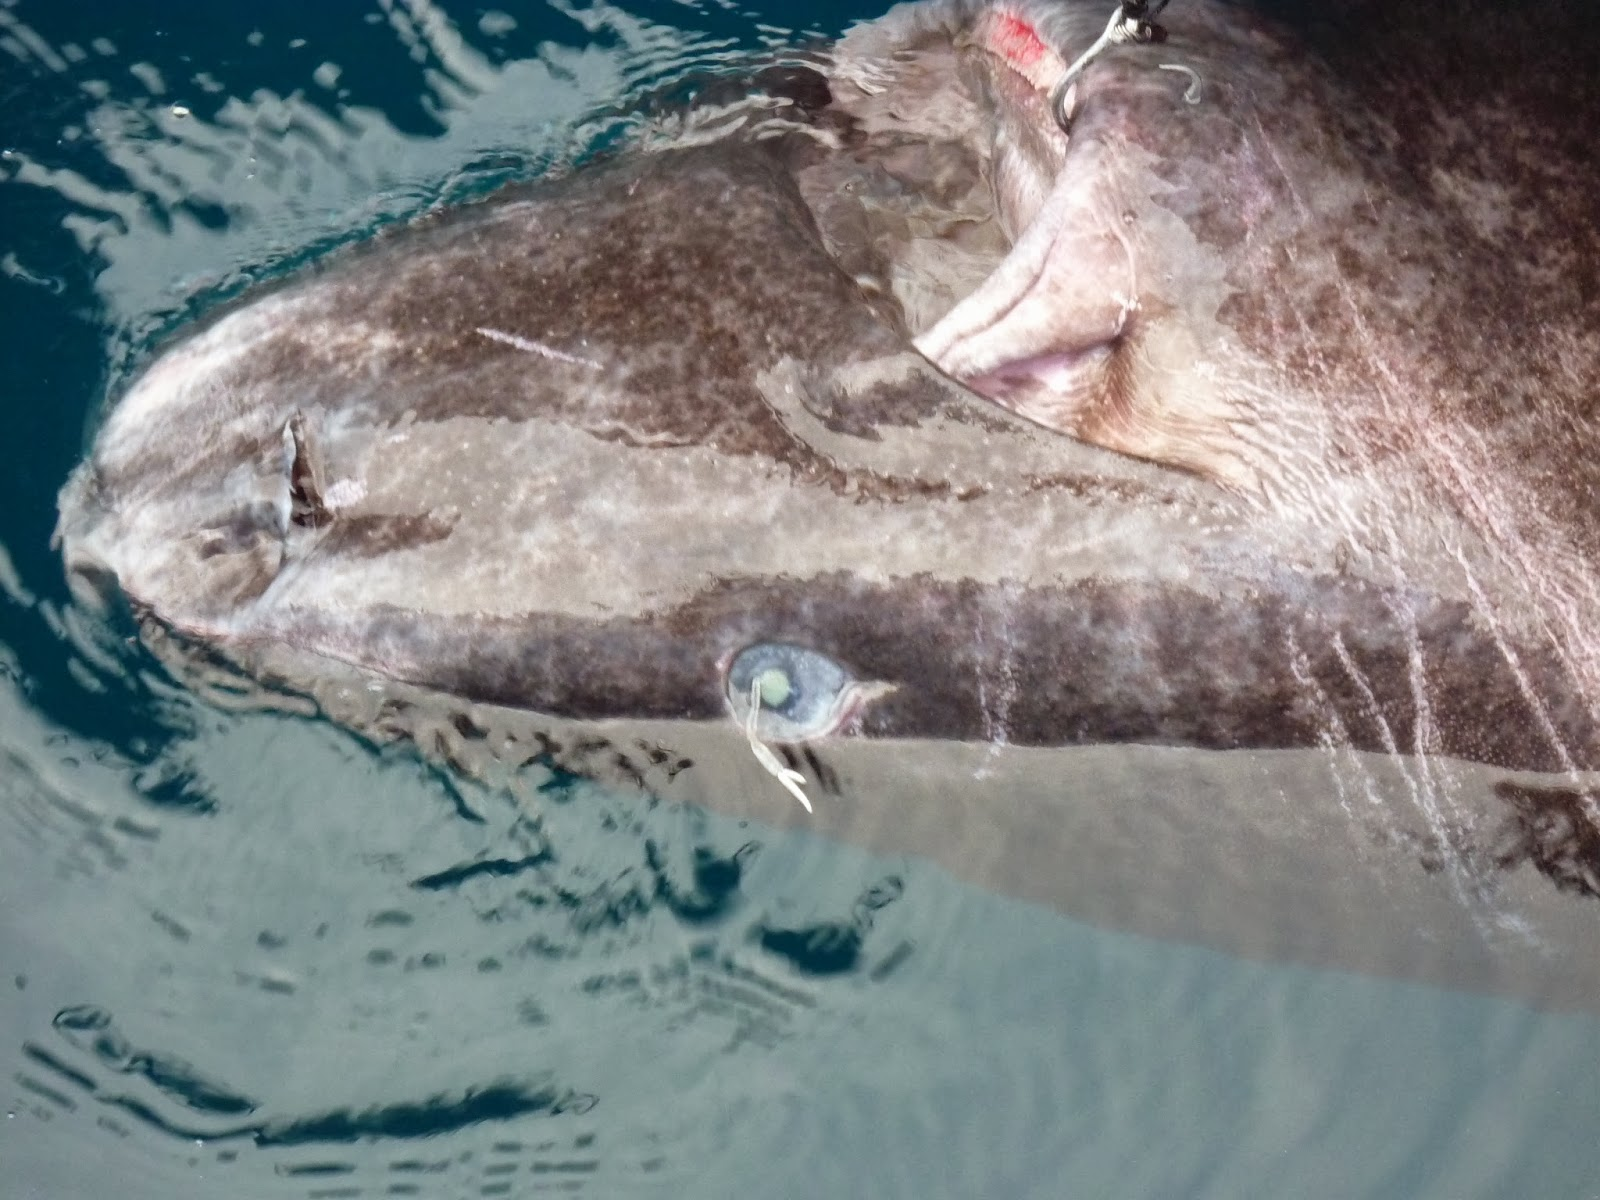 tangent ramblings greenland shark complete copepod shark is on its back